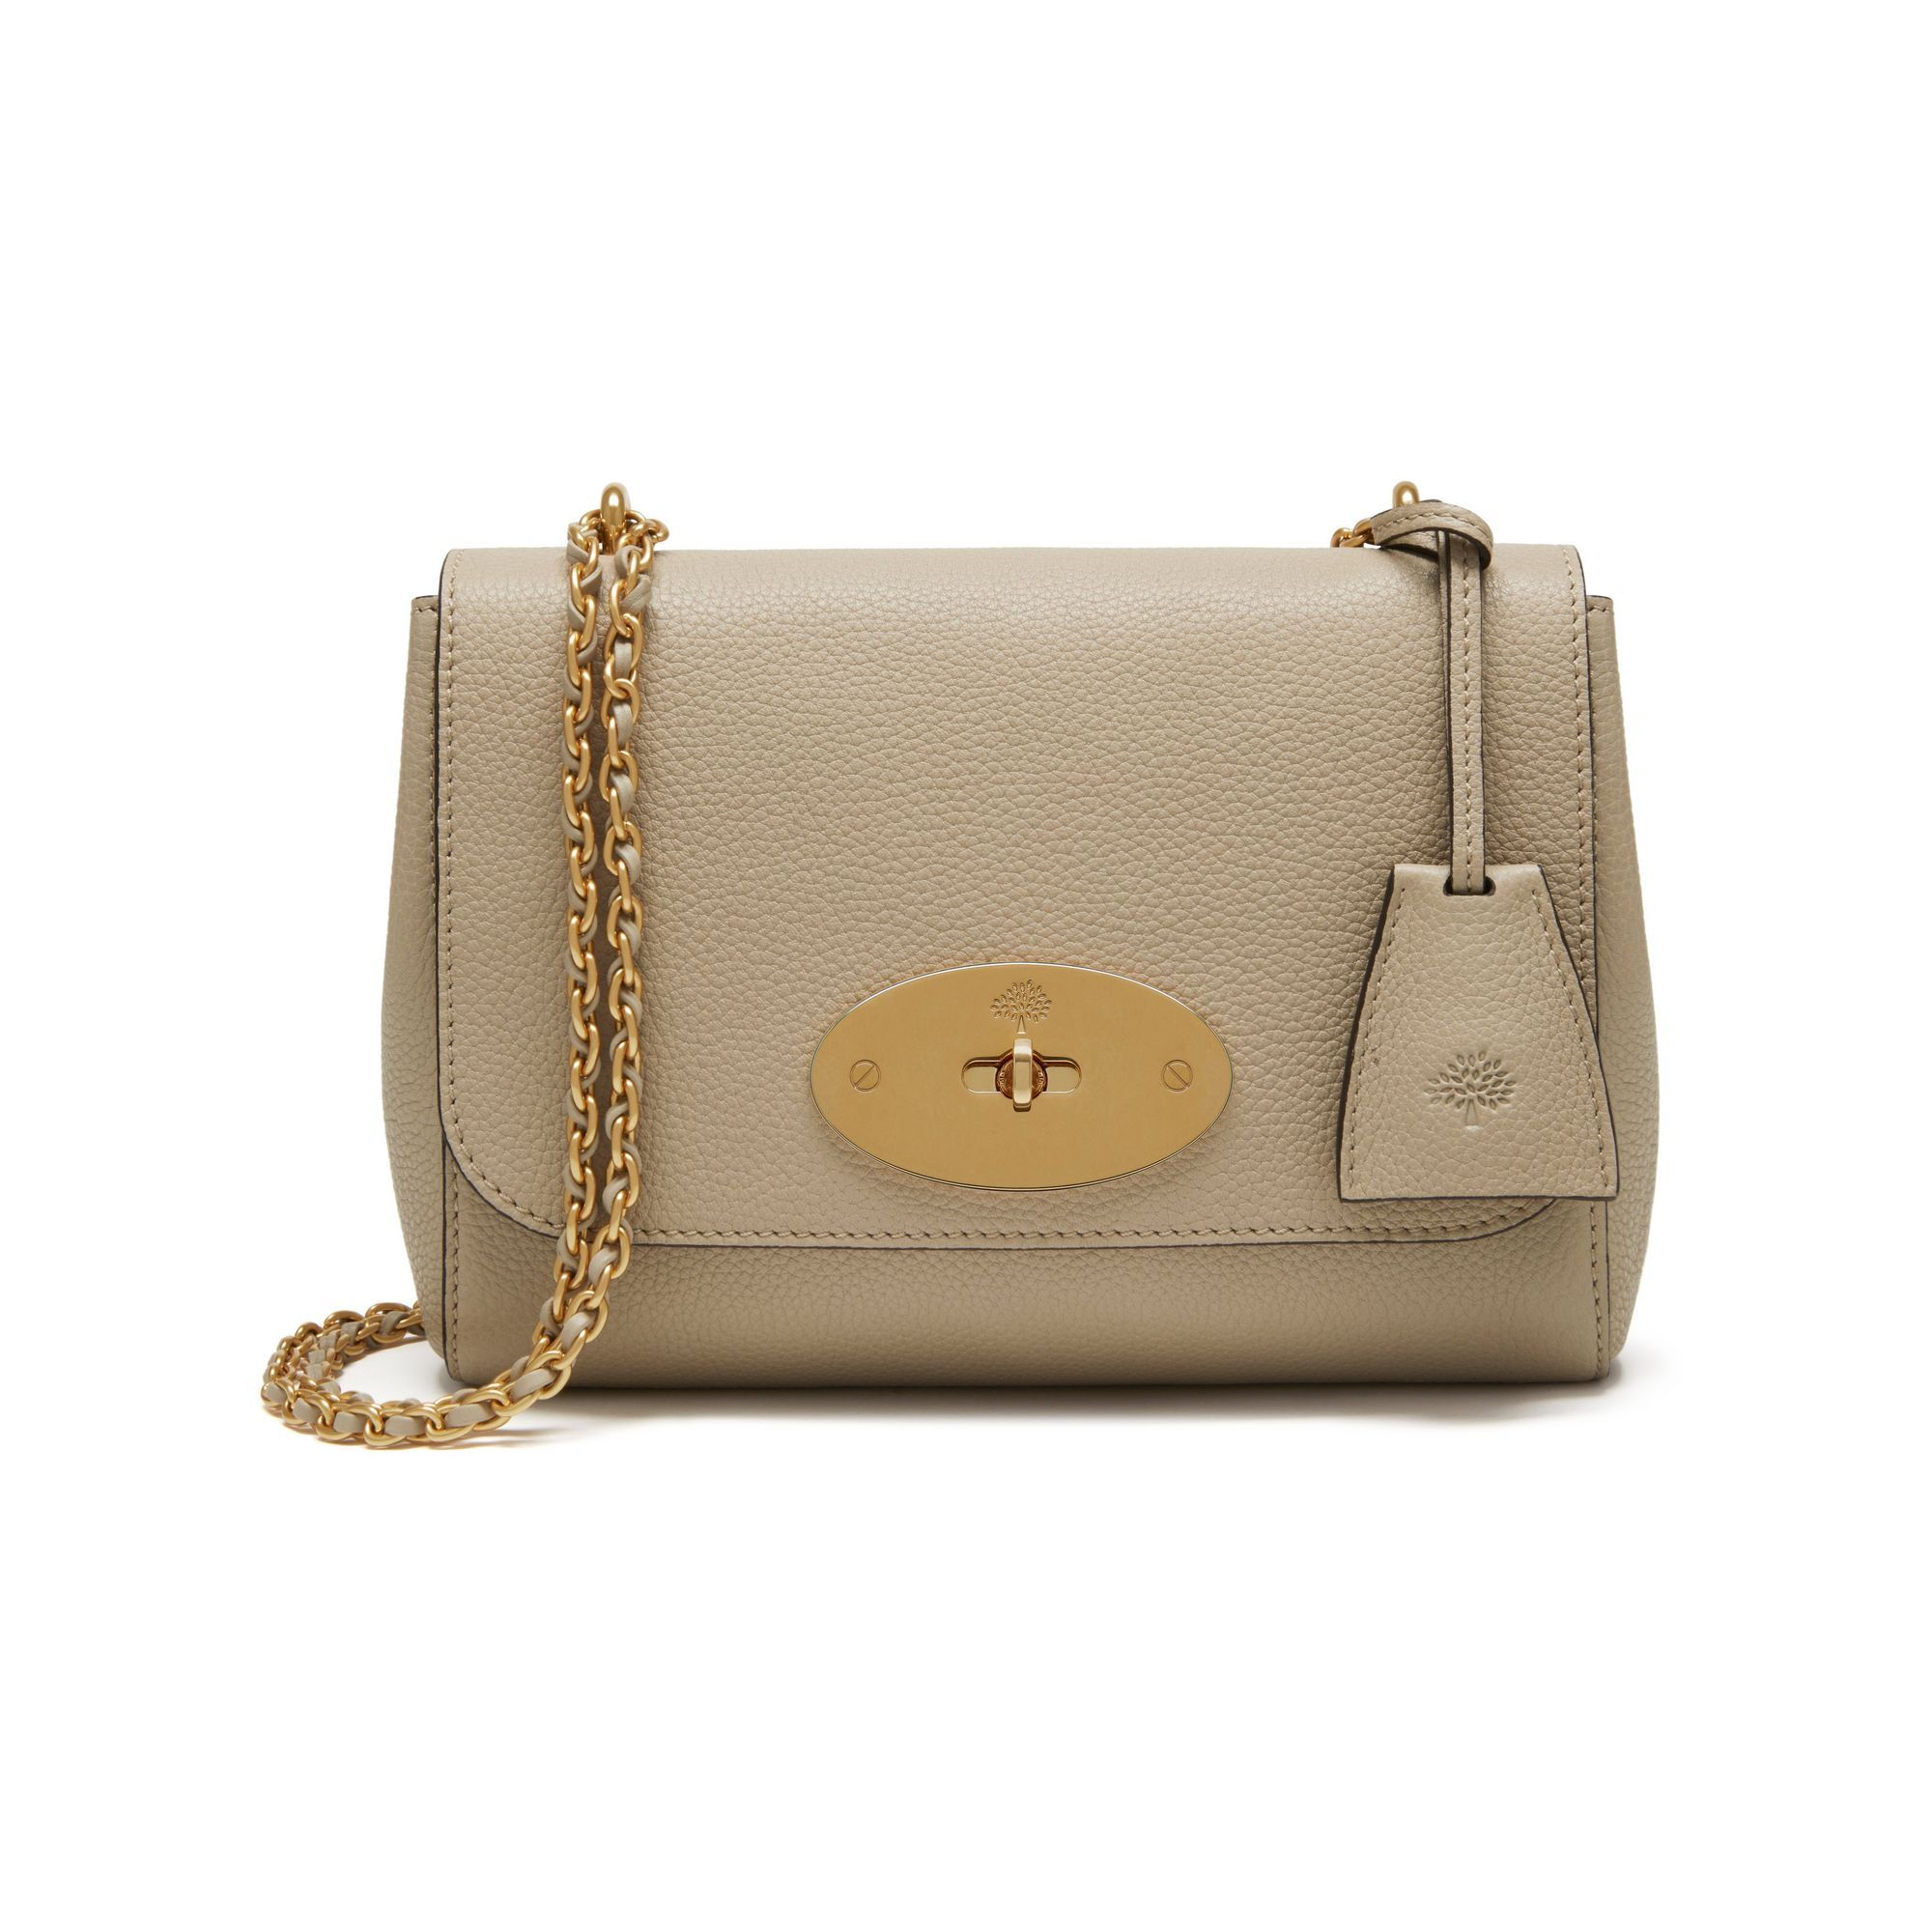 Shop the Lily in Dune Small Classic Grain at Mulberry.com. The Lily ... bd7841454f4a6